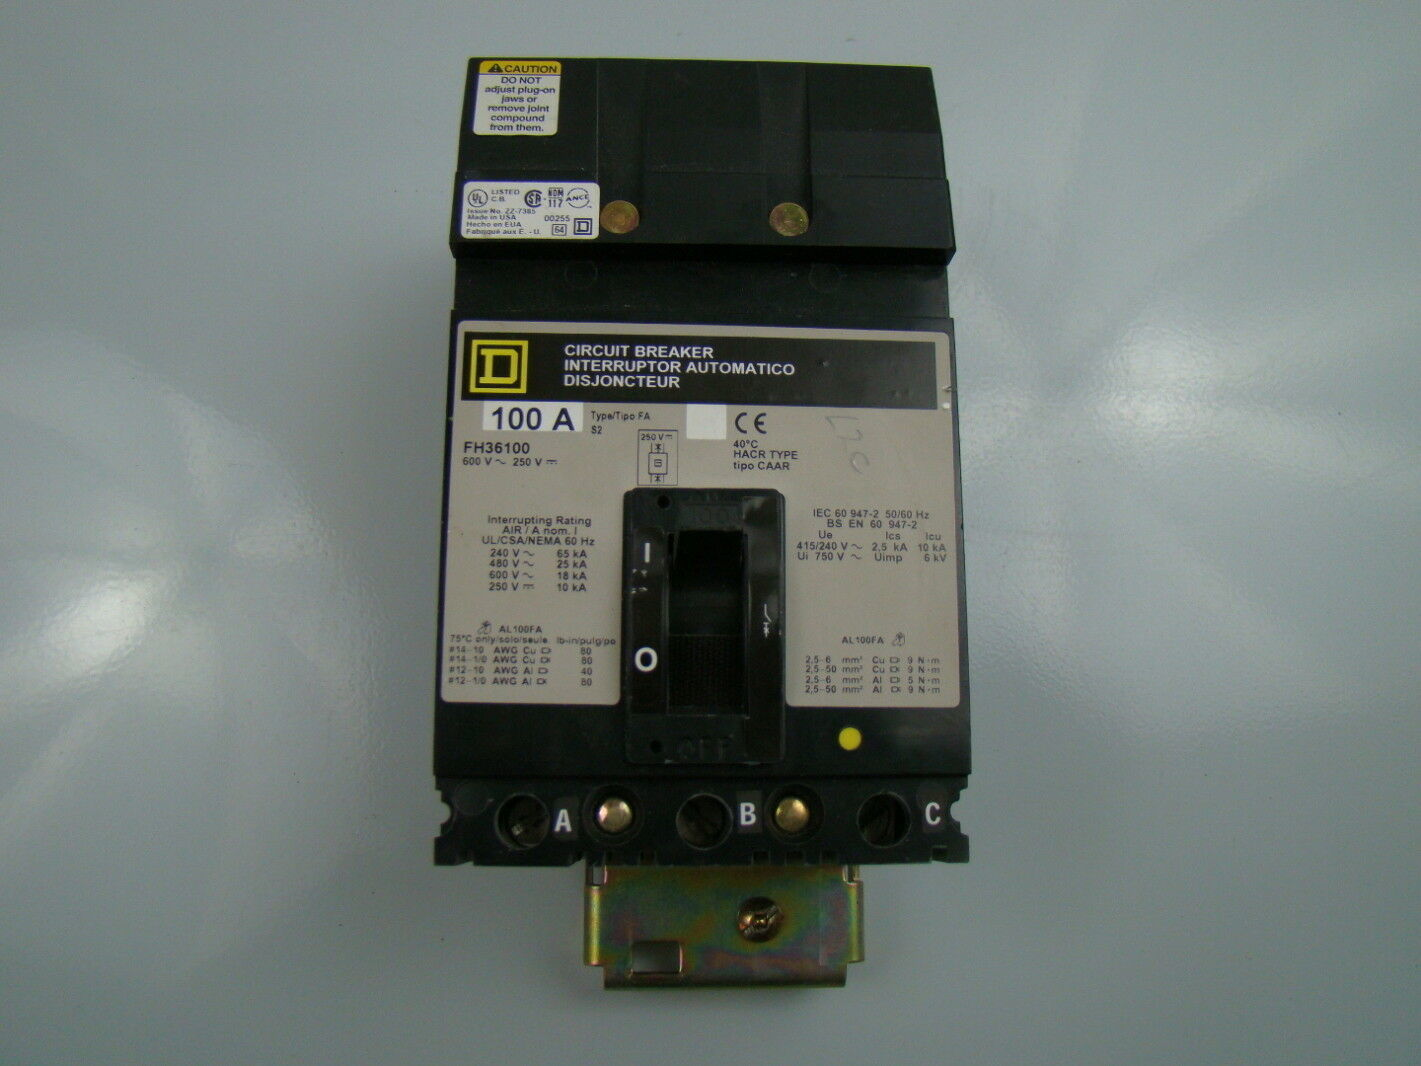 Details about Square D I-Line Circuit Breaker 100A 600VAX 250VDC ...